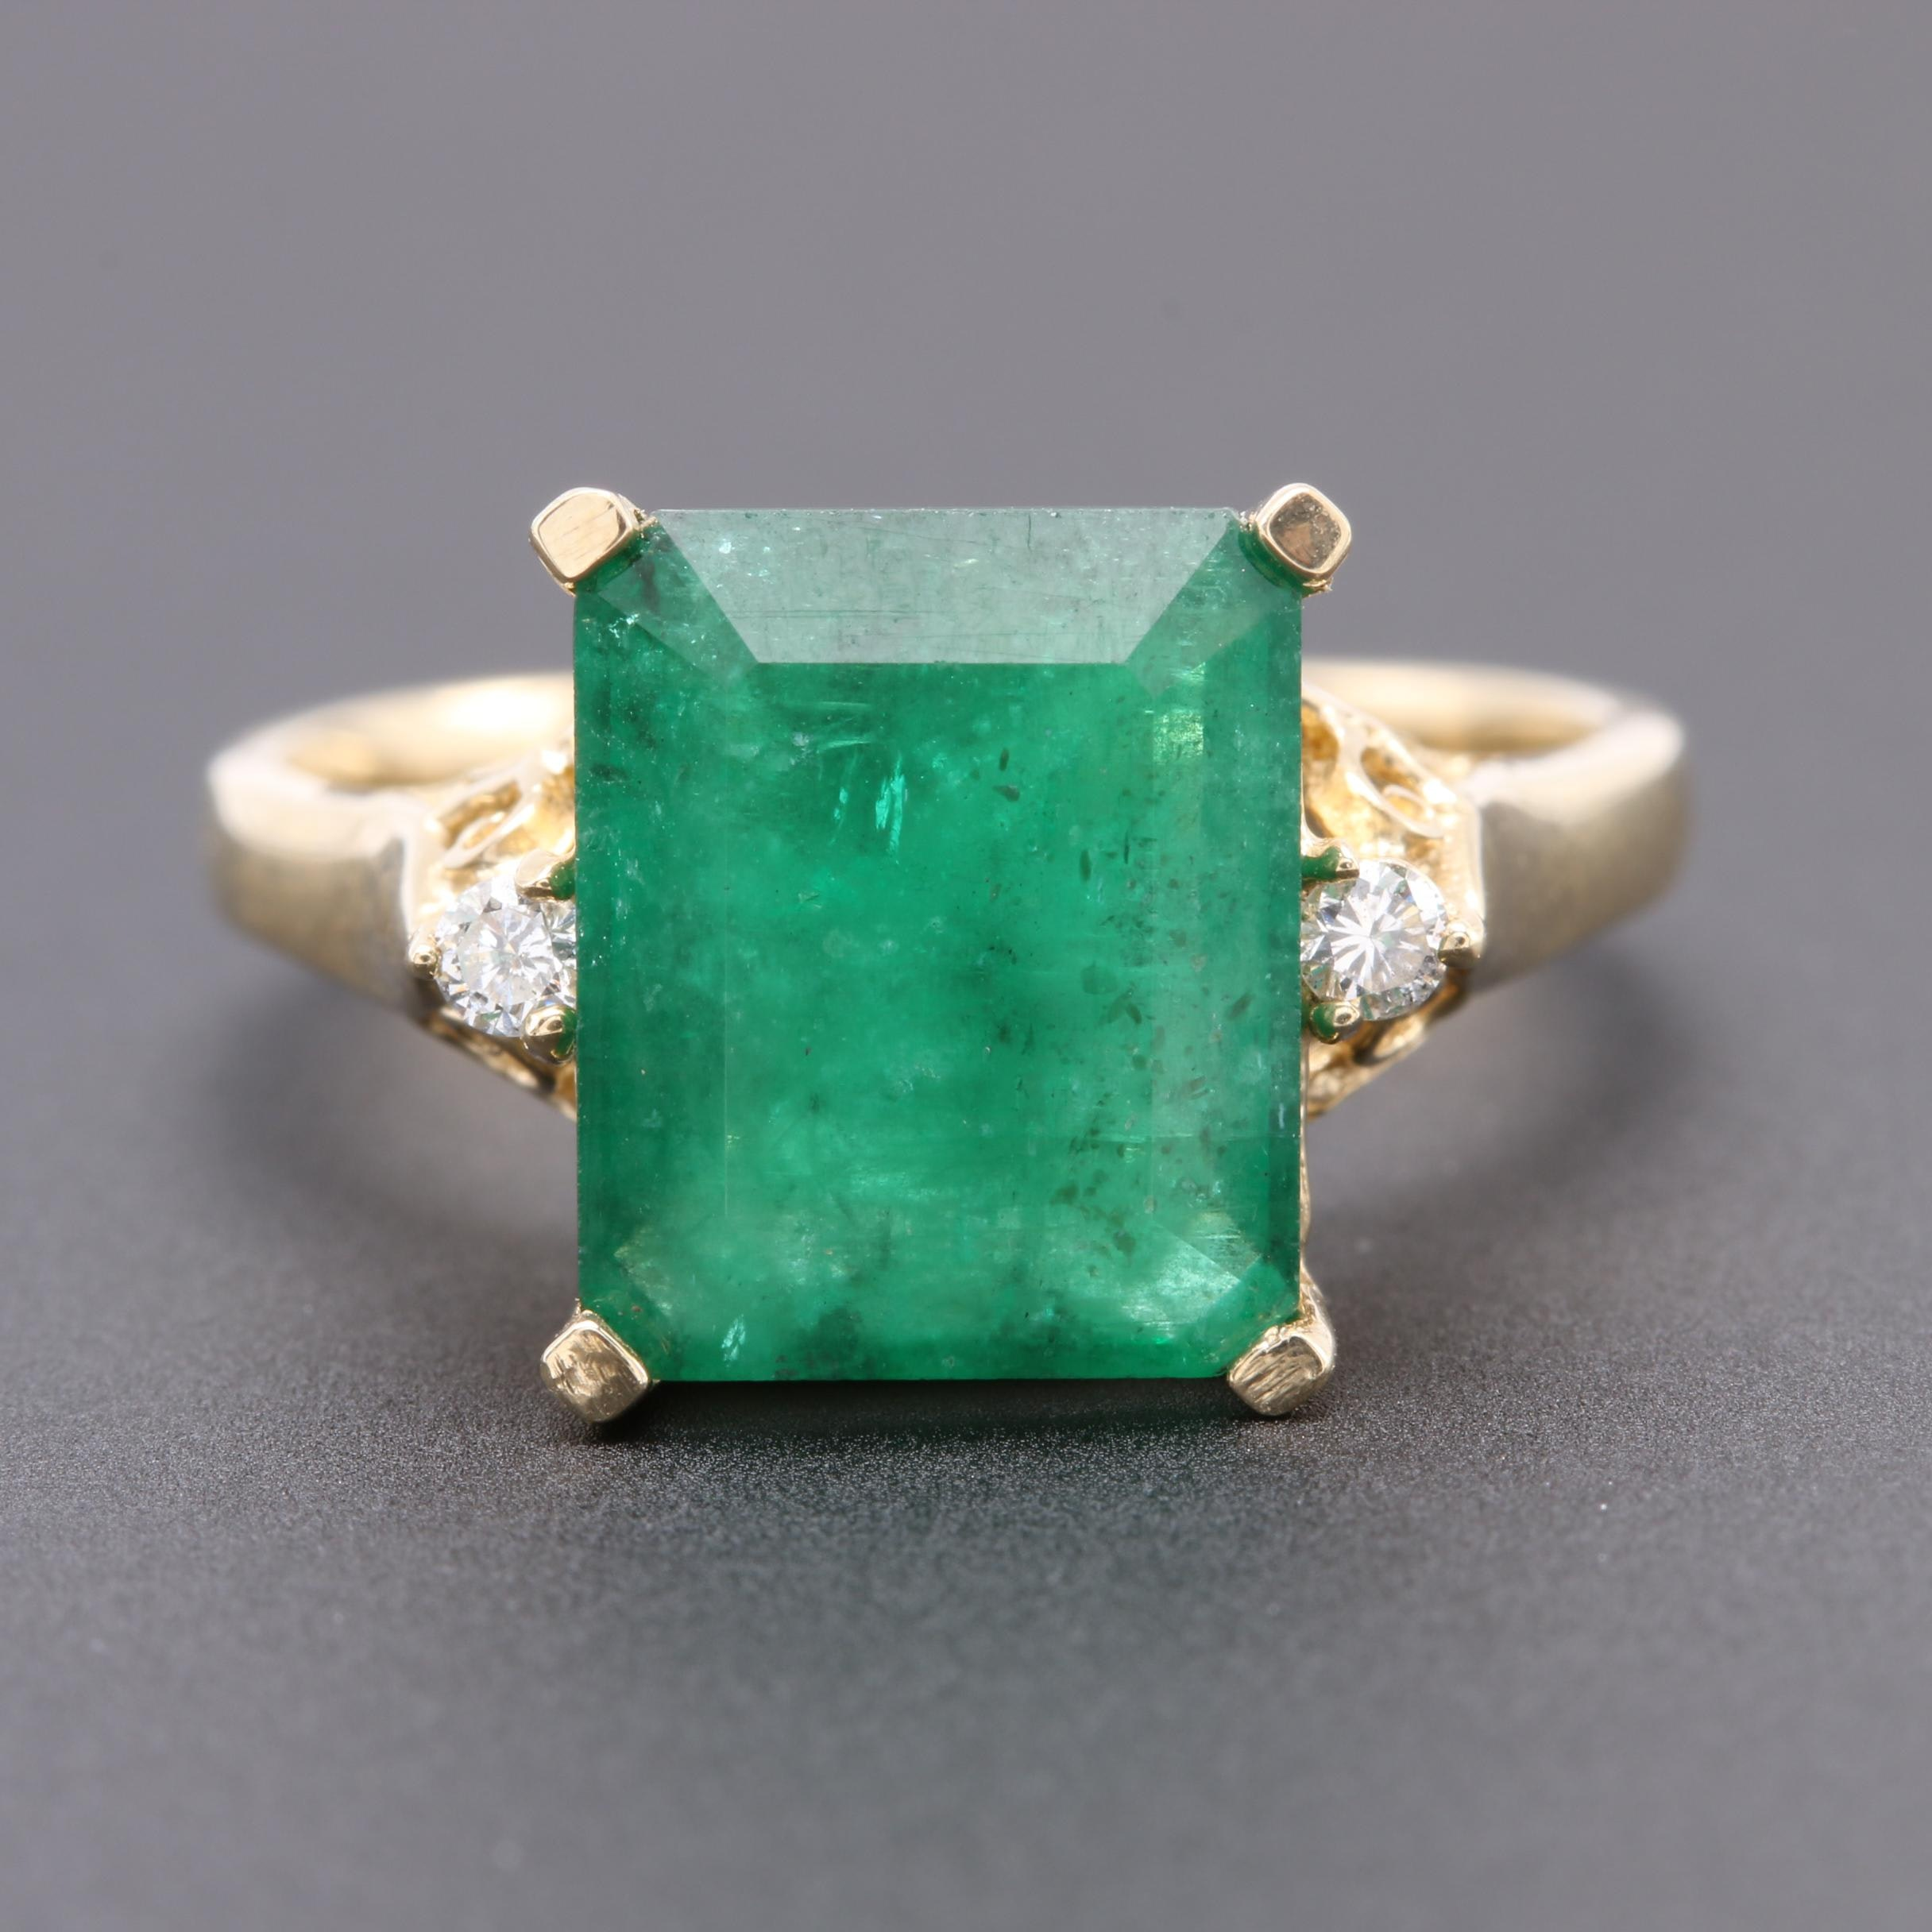 14K Yellow Gold 2.92 CT Emerald and Diamond Ring